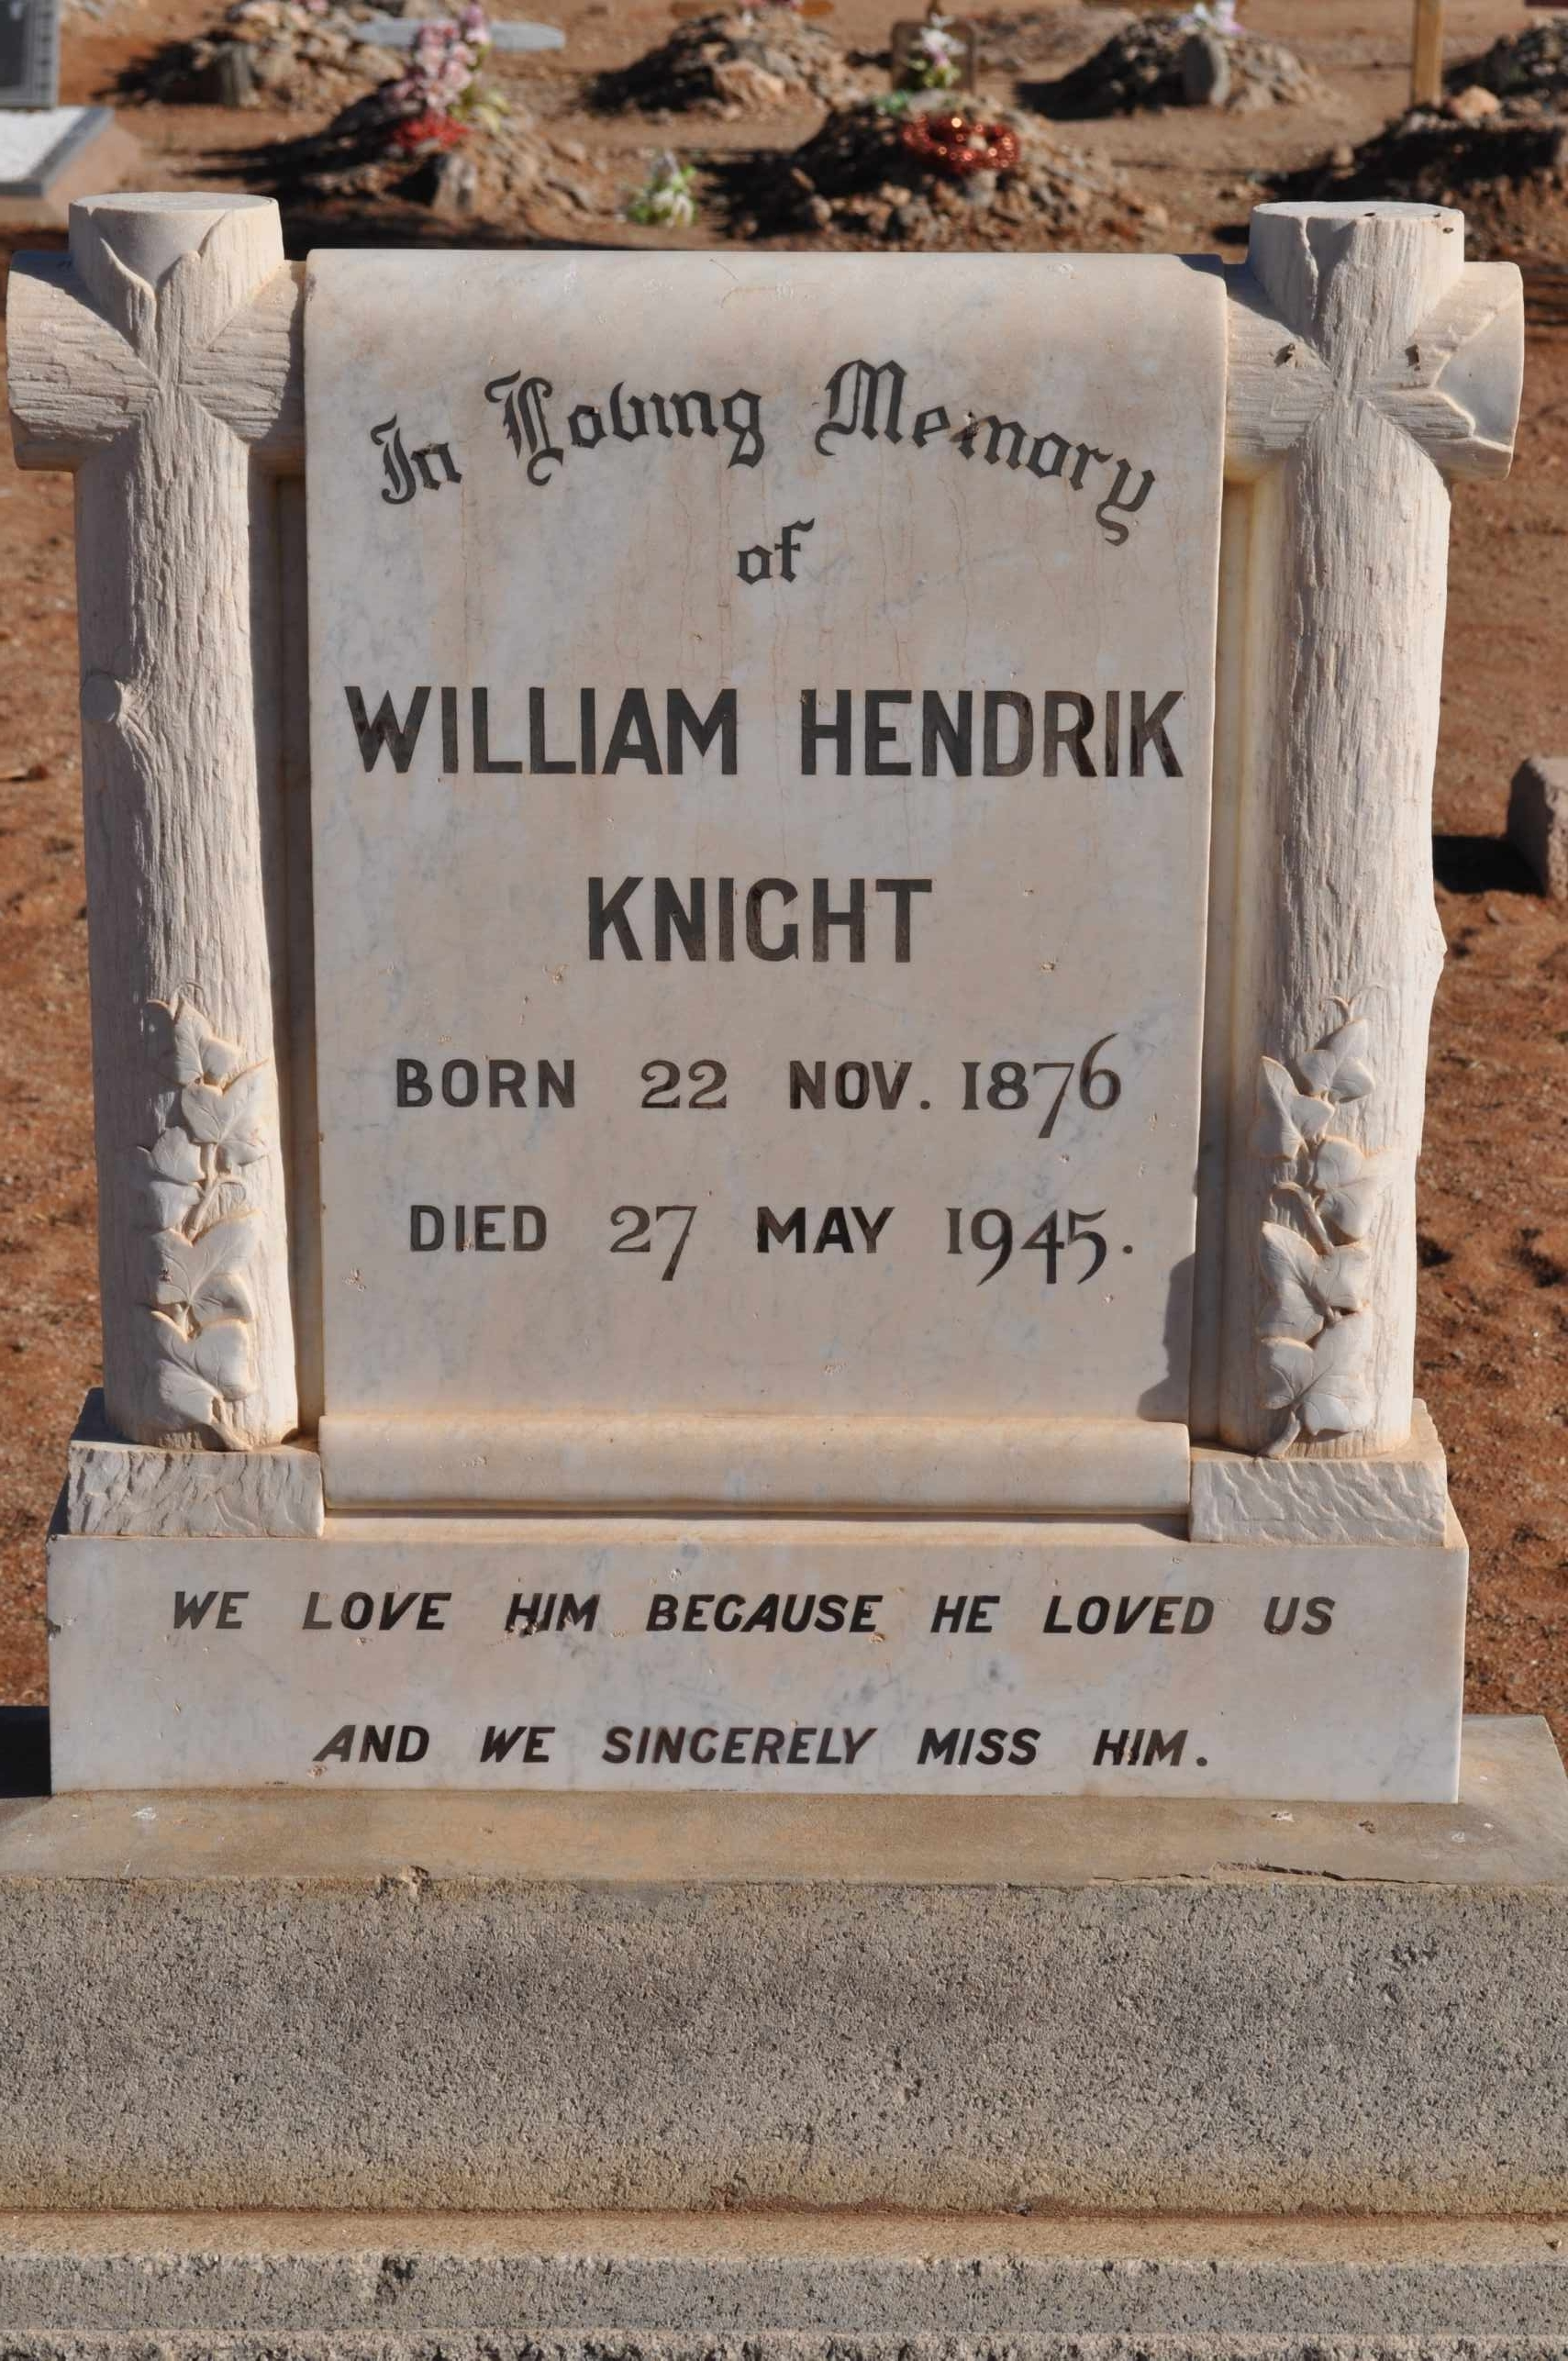 Knight, William Hendrik